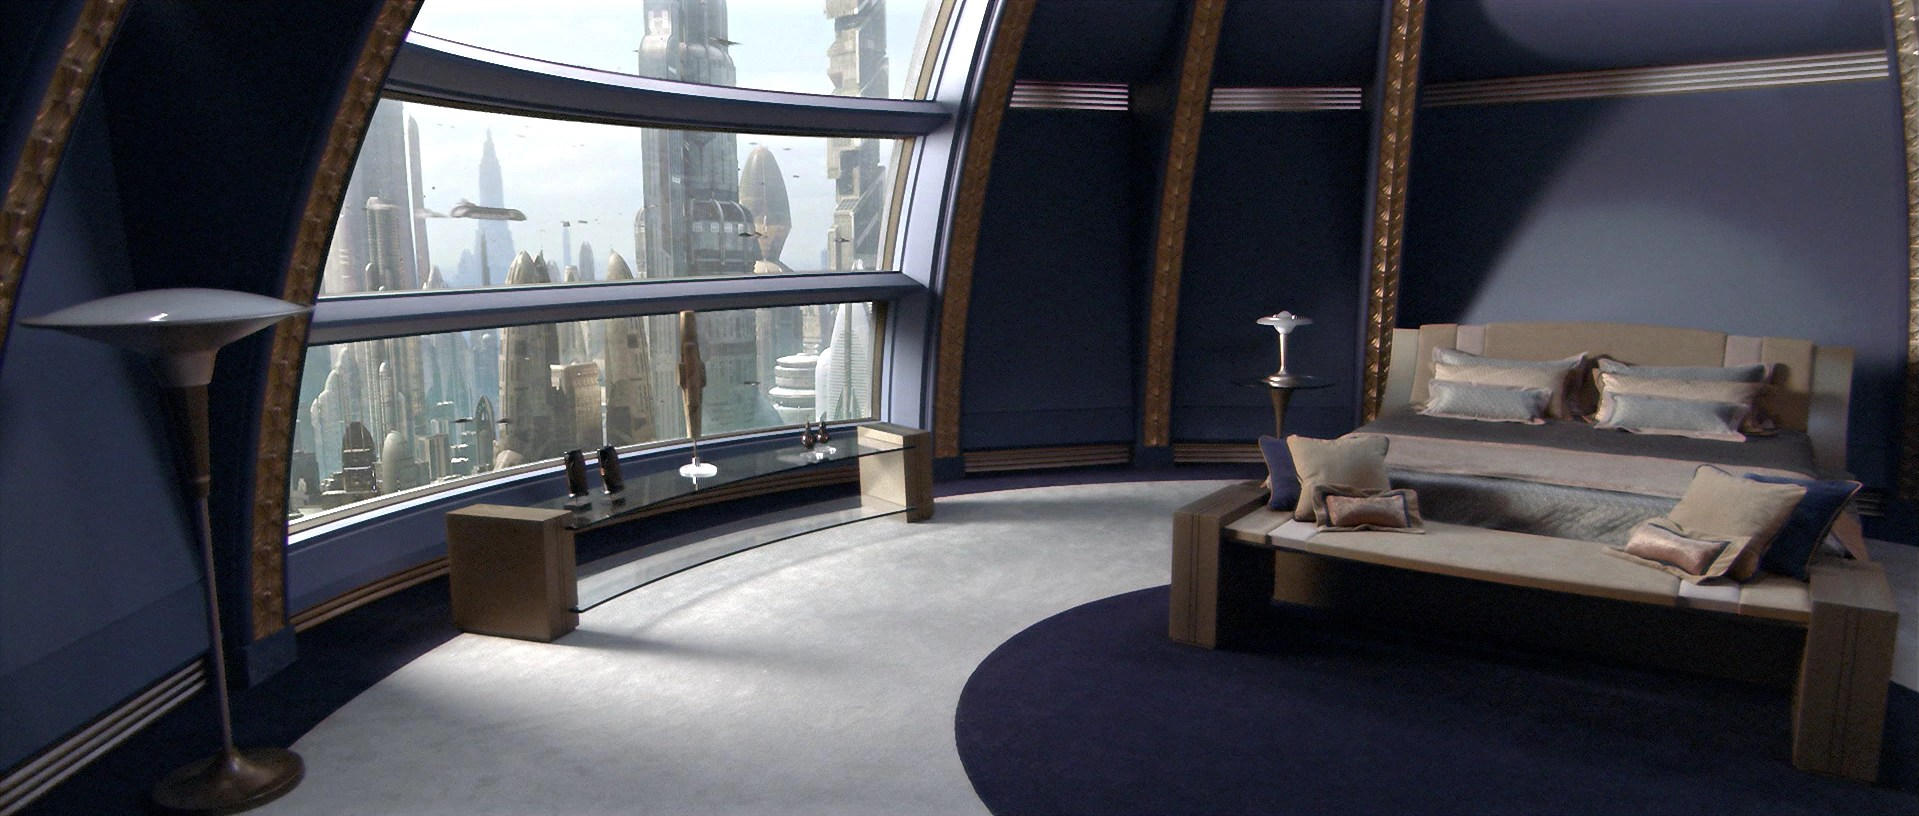 Padme Amidalas apartment